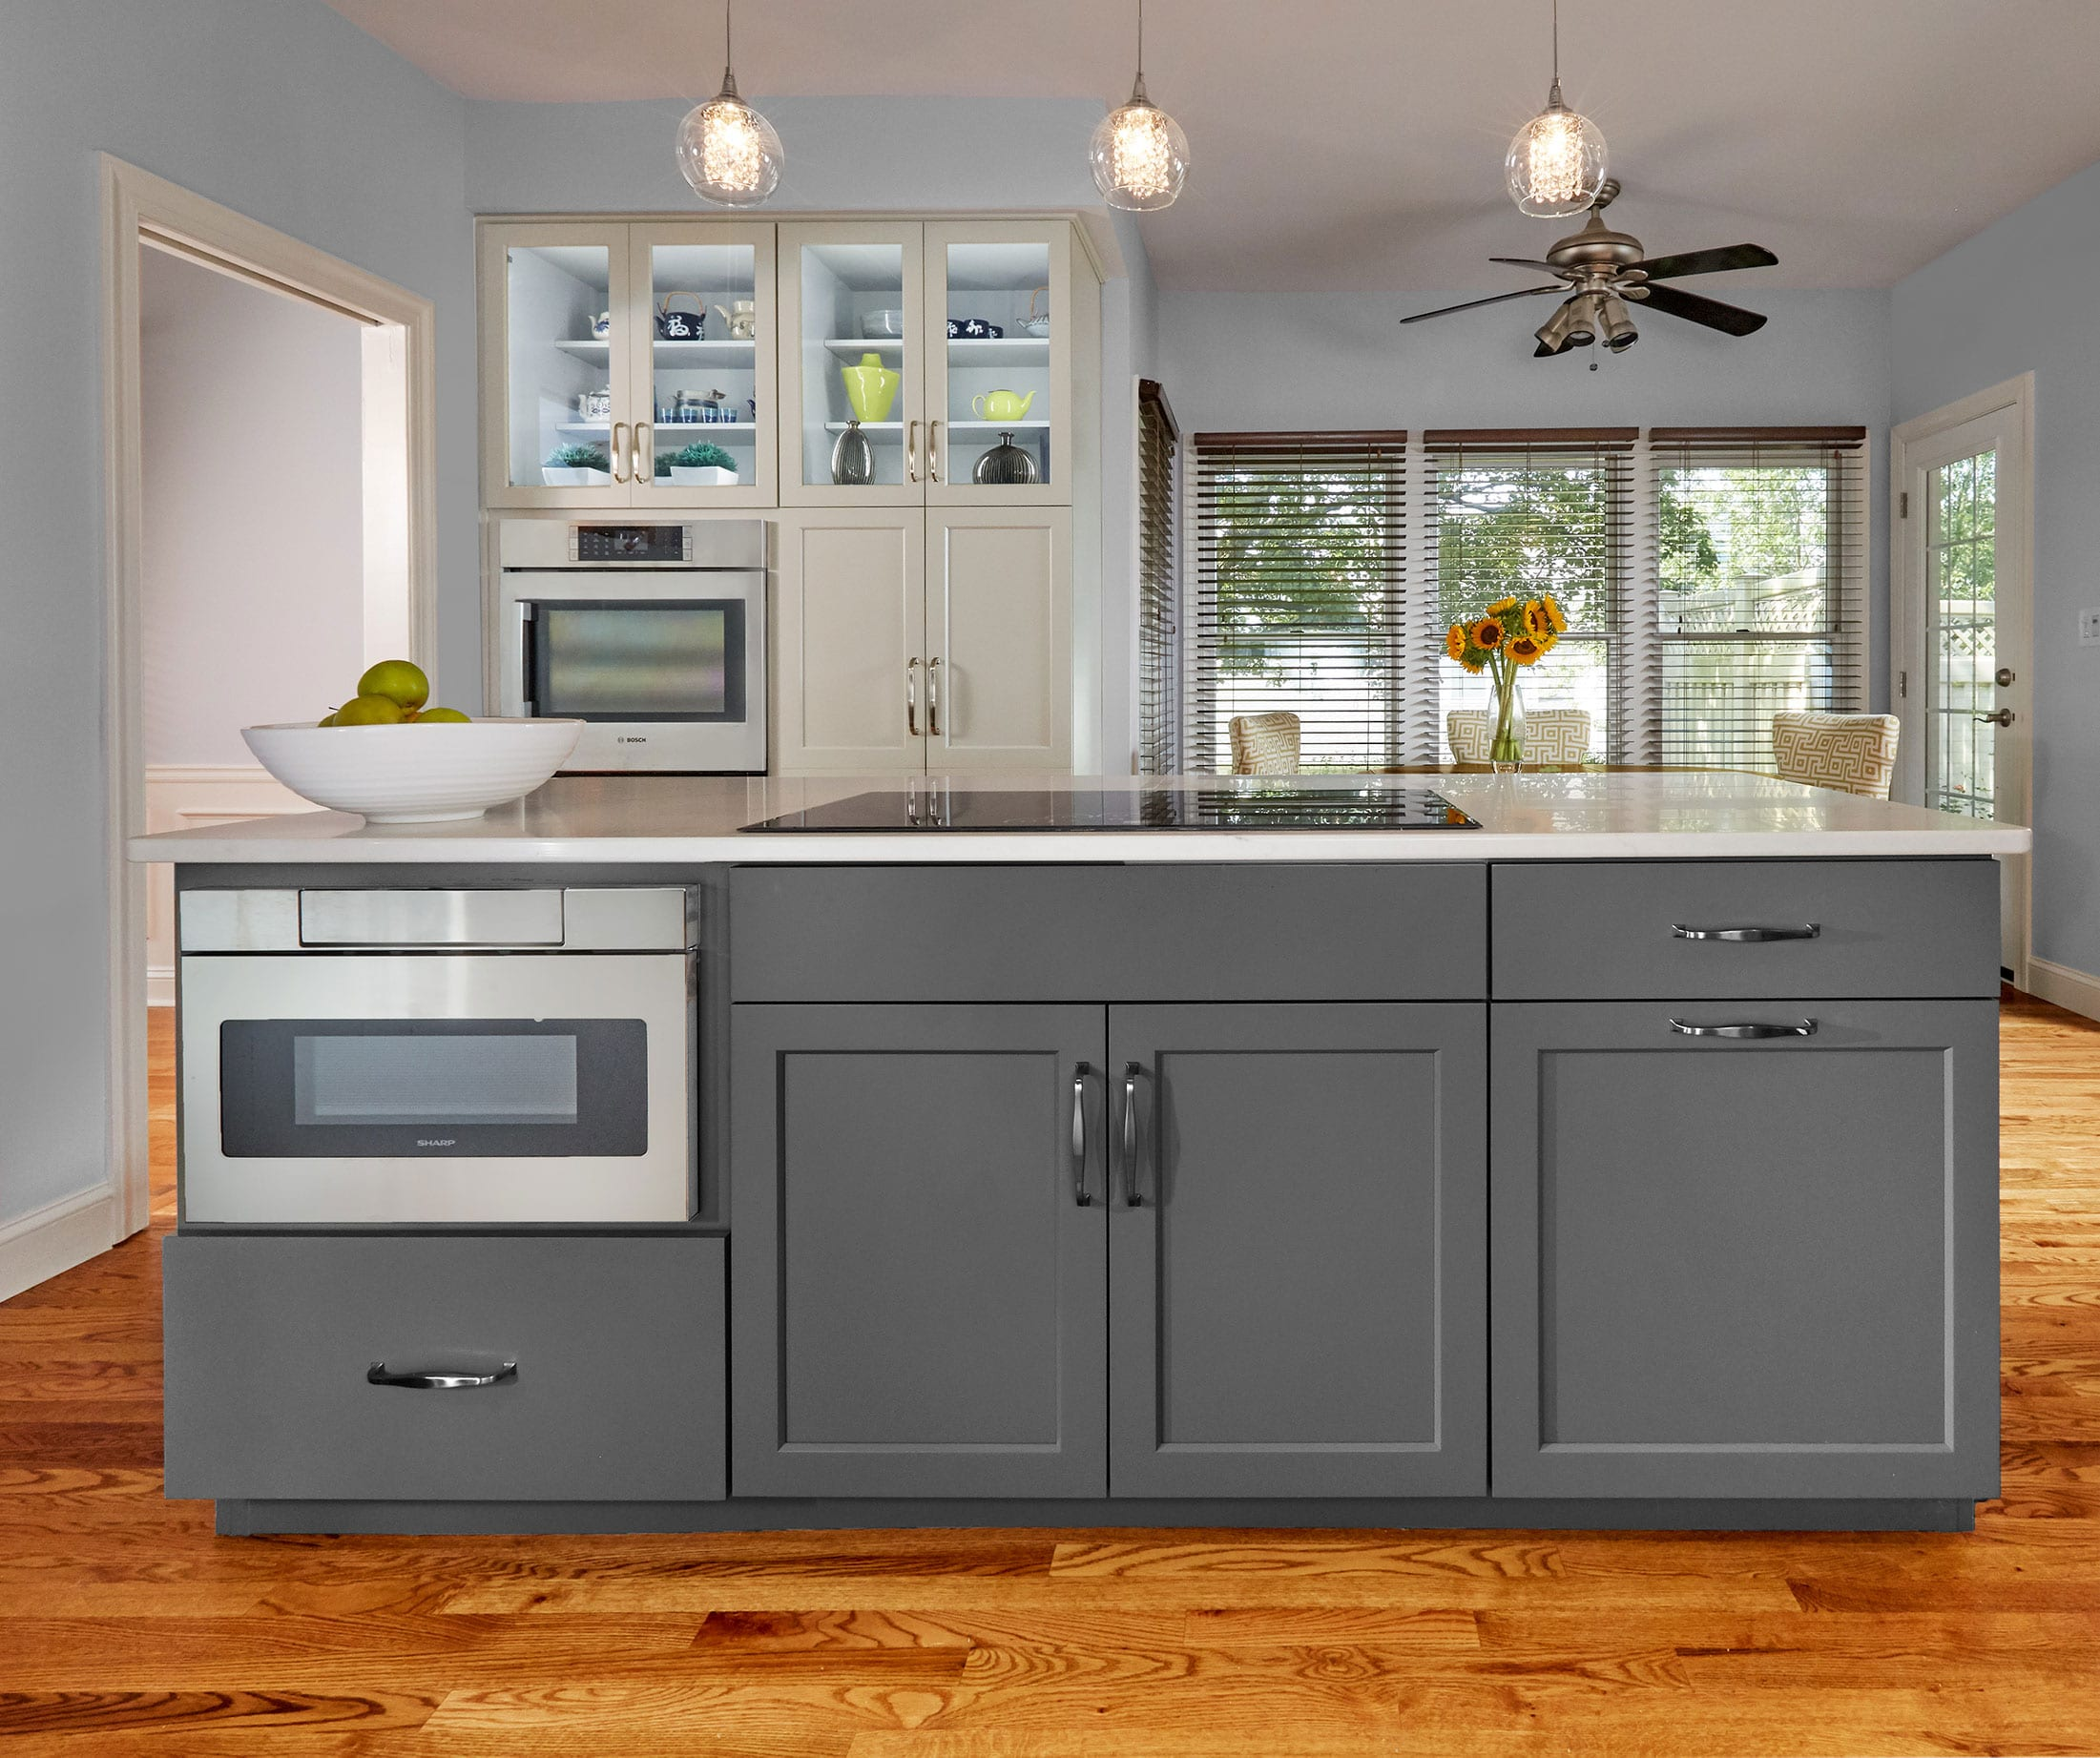 microwave drawers offer improved